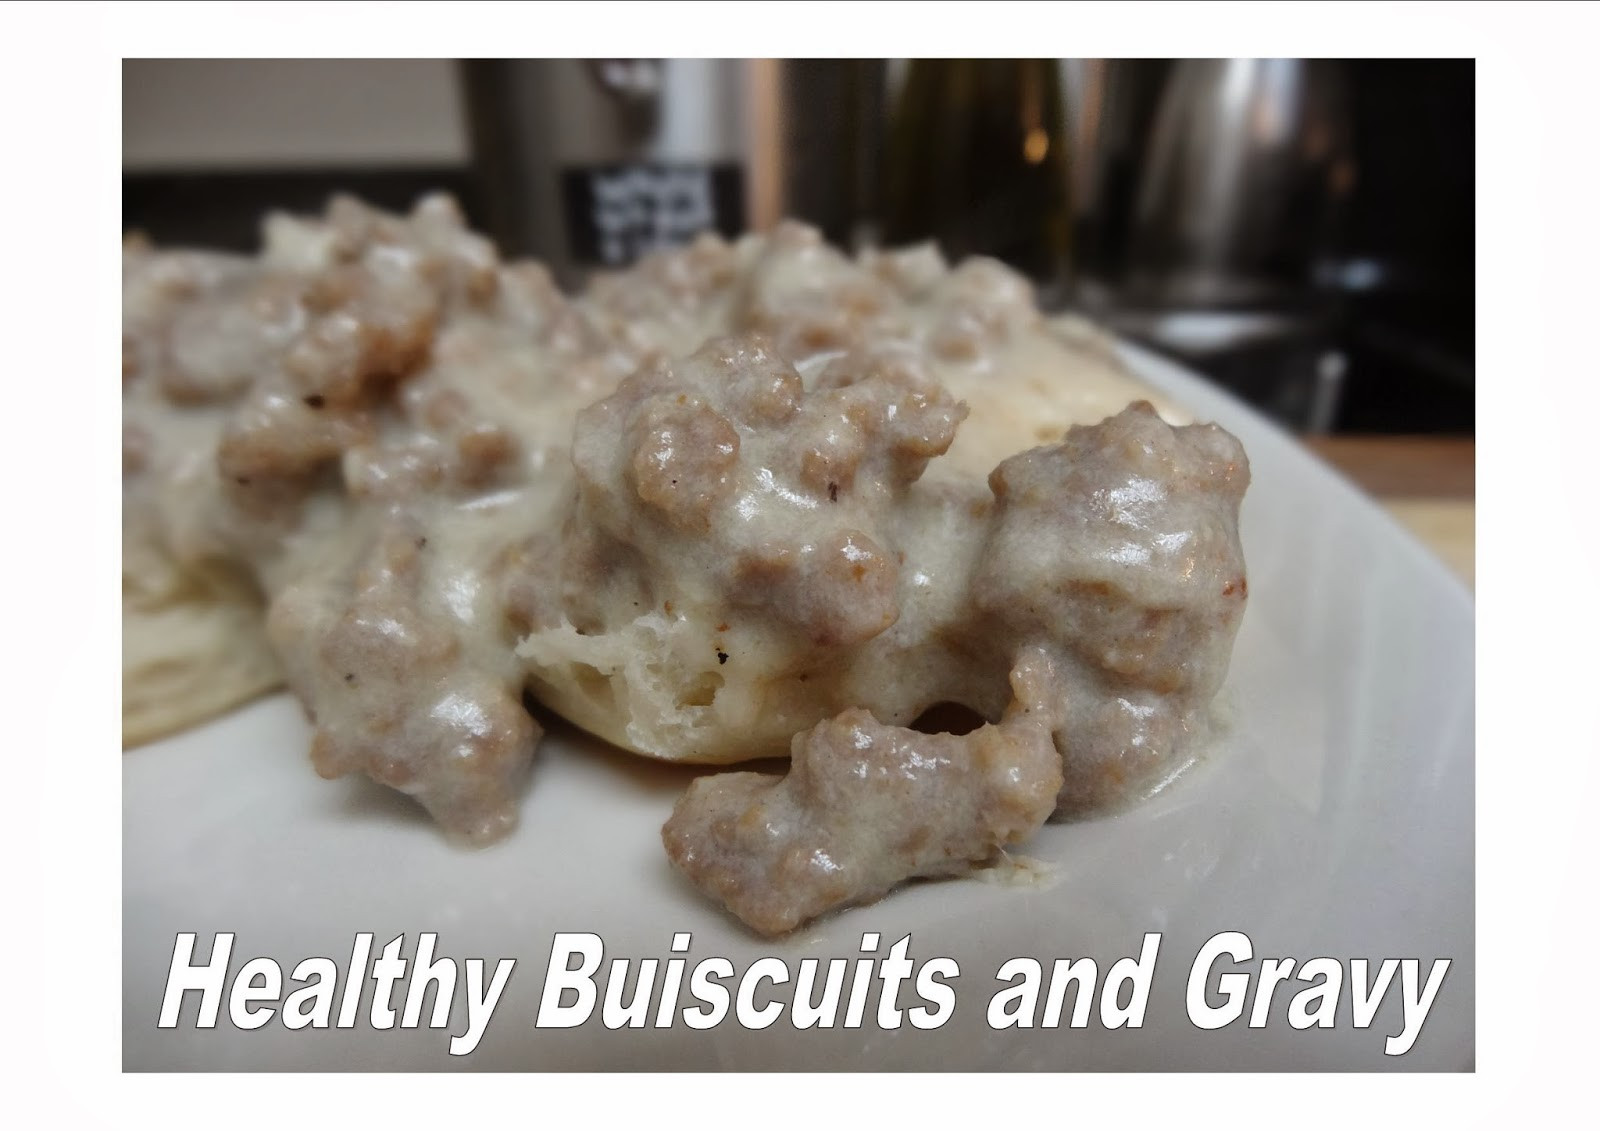 Healthy Biscuits And Gravy  The Thrifty Italian Mama Healthy Biscuits and Gravy